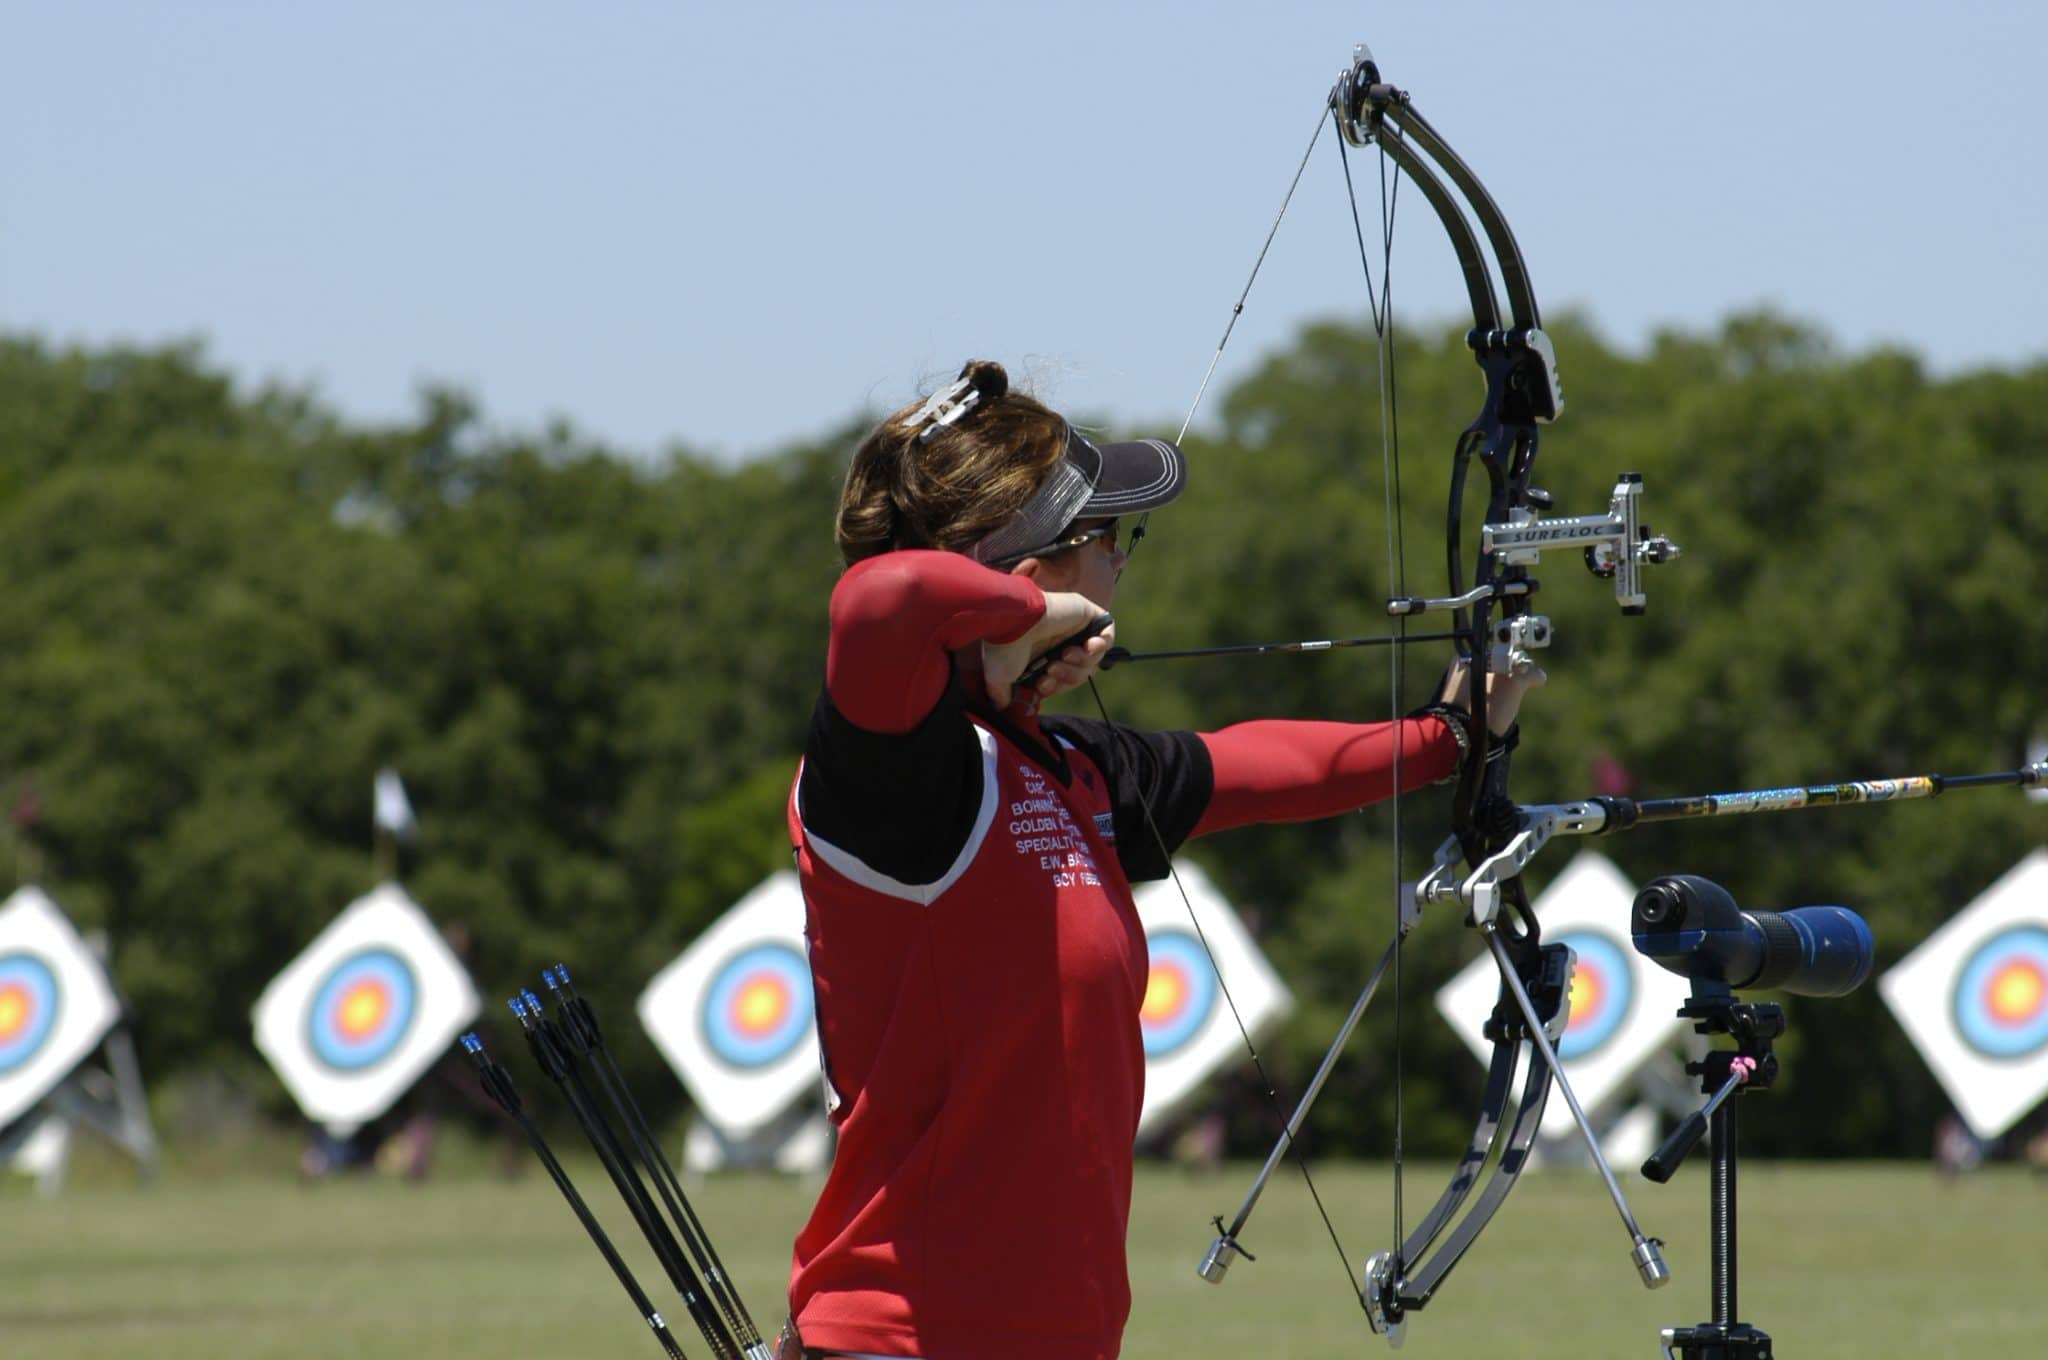 11 Archery Exercises For Precision & Accuracy